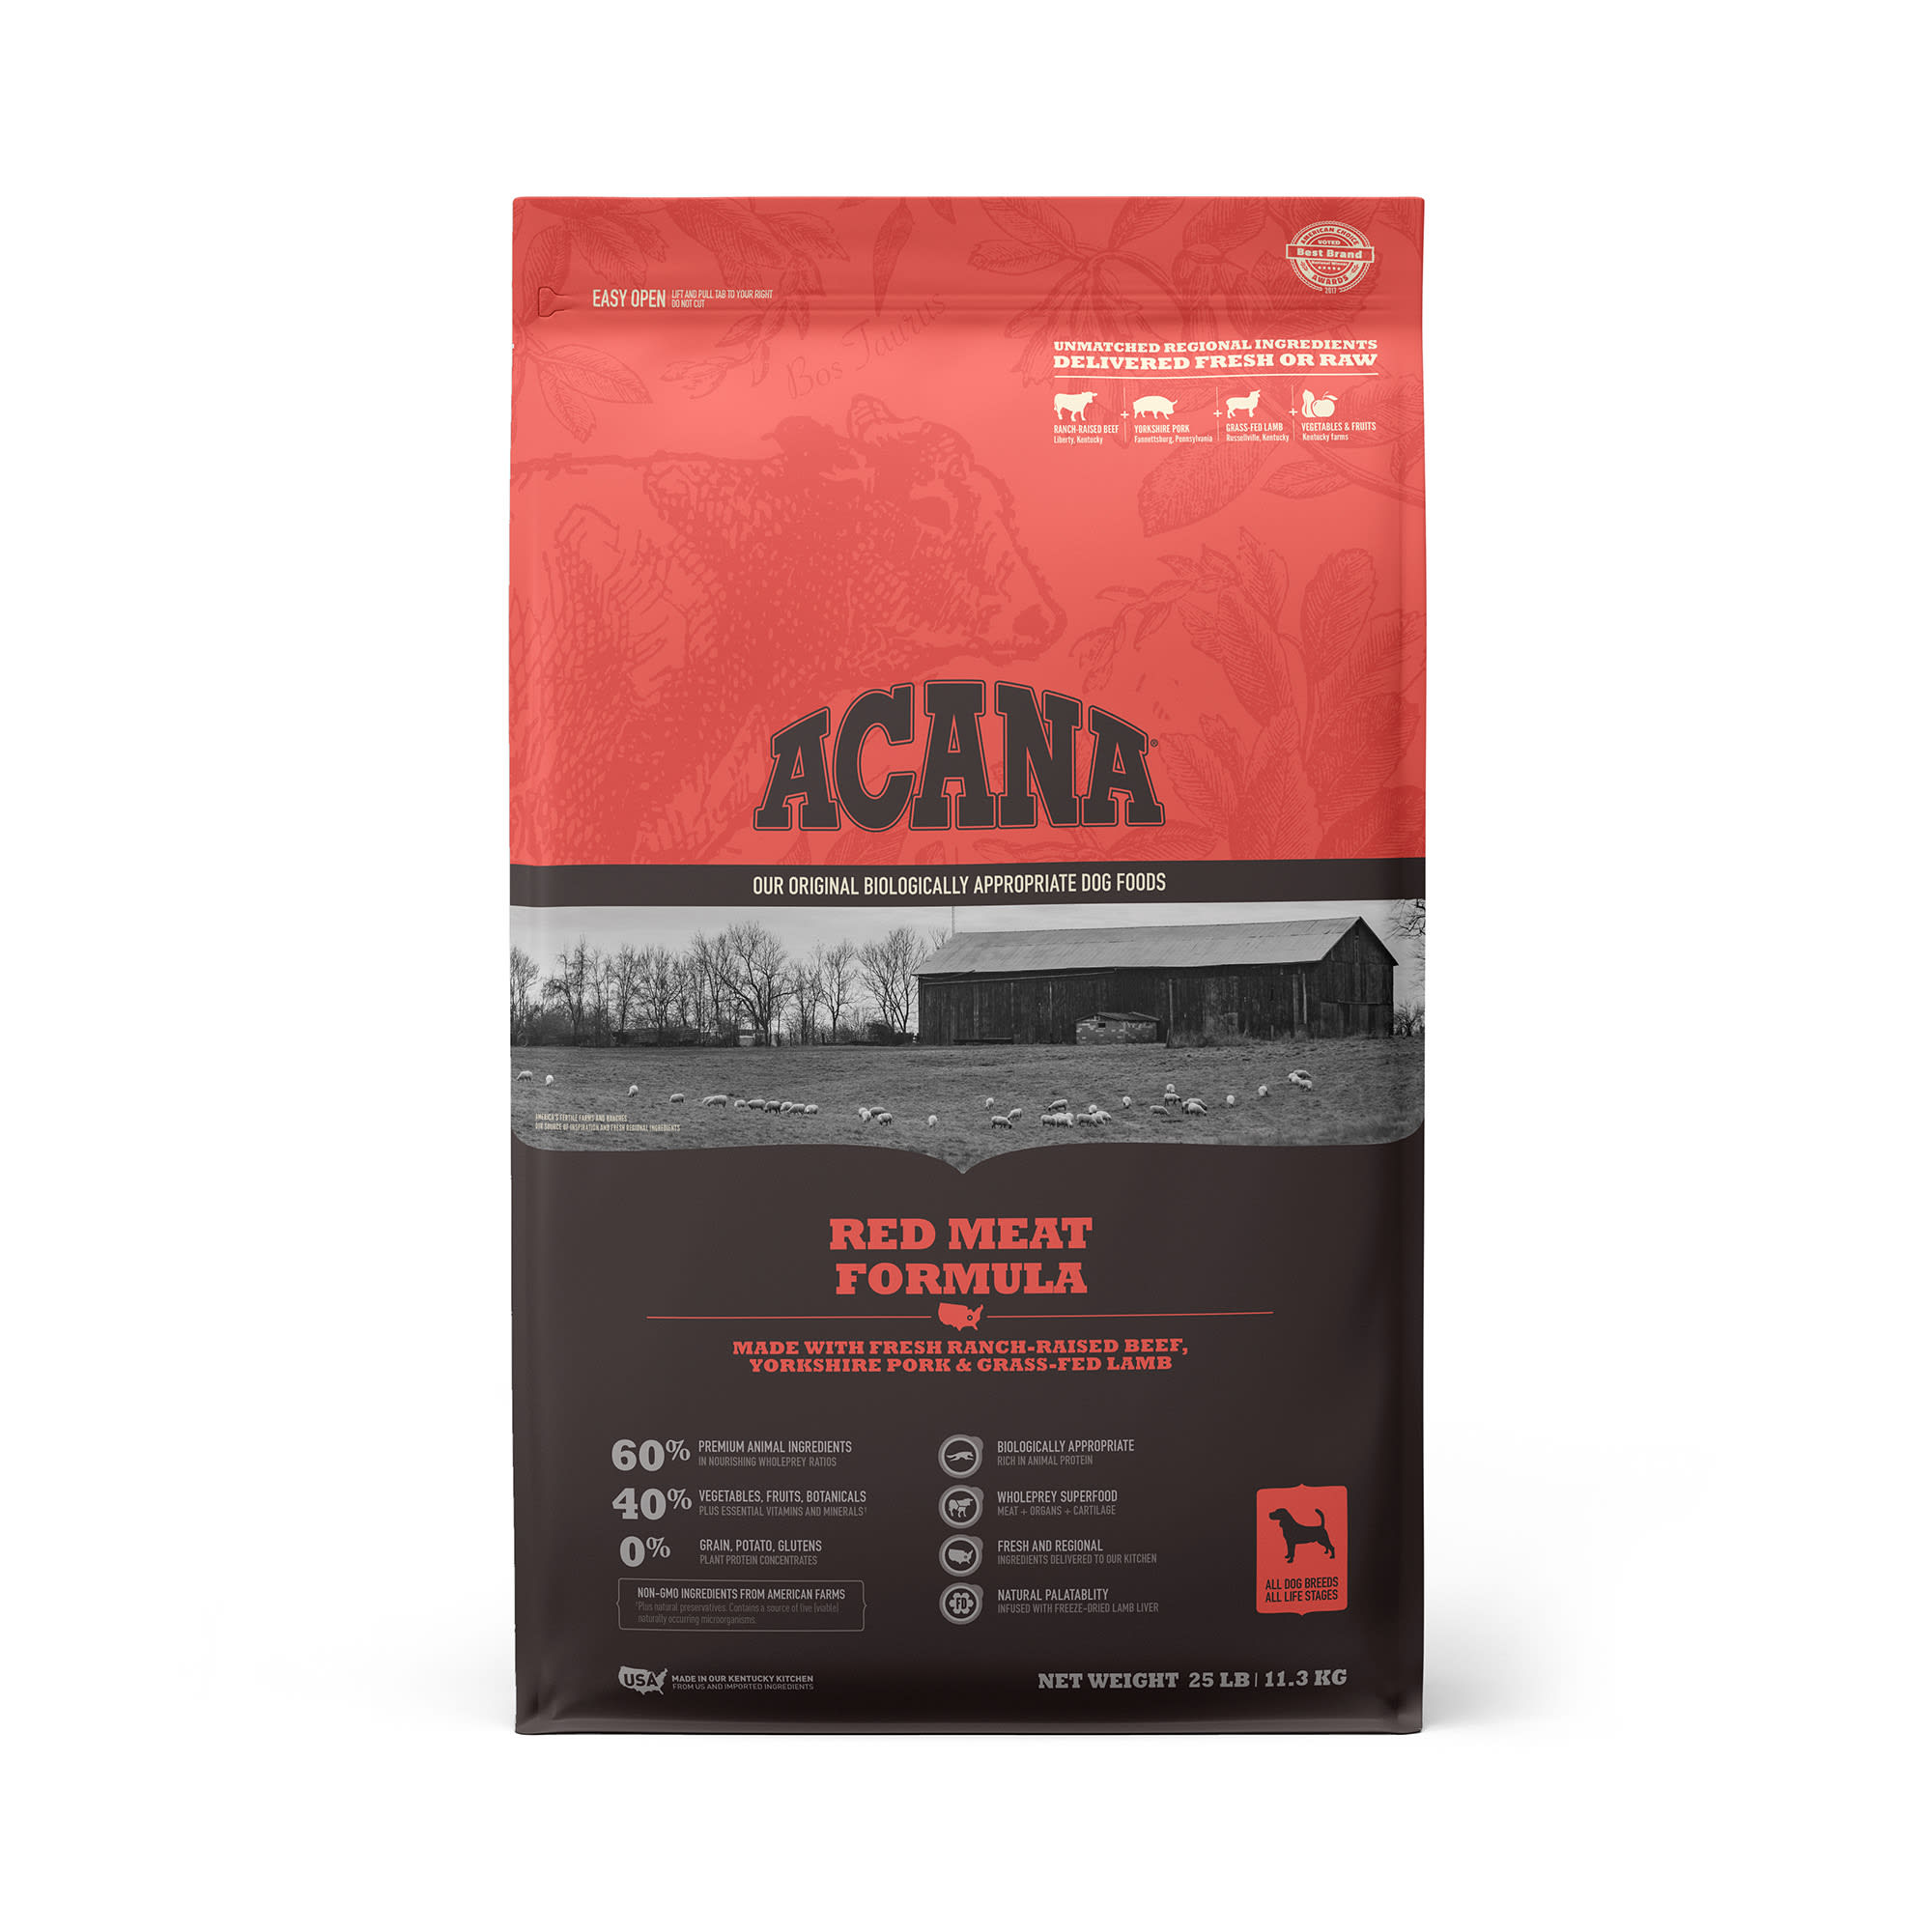 ACANA Grain-Free Red Meat Ranch-Raised Beef Yorkshire Pork Grass-Fed Lamb Dry Dog Food